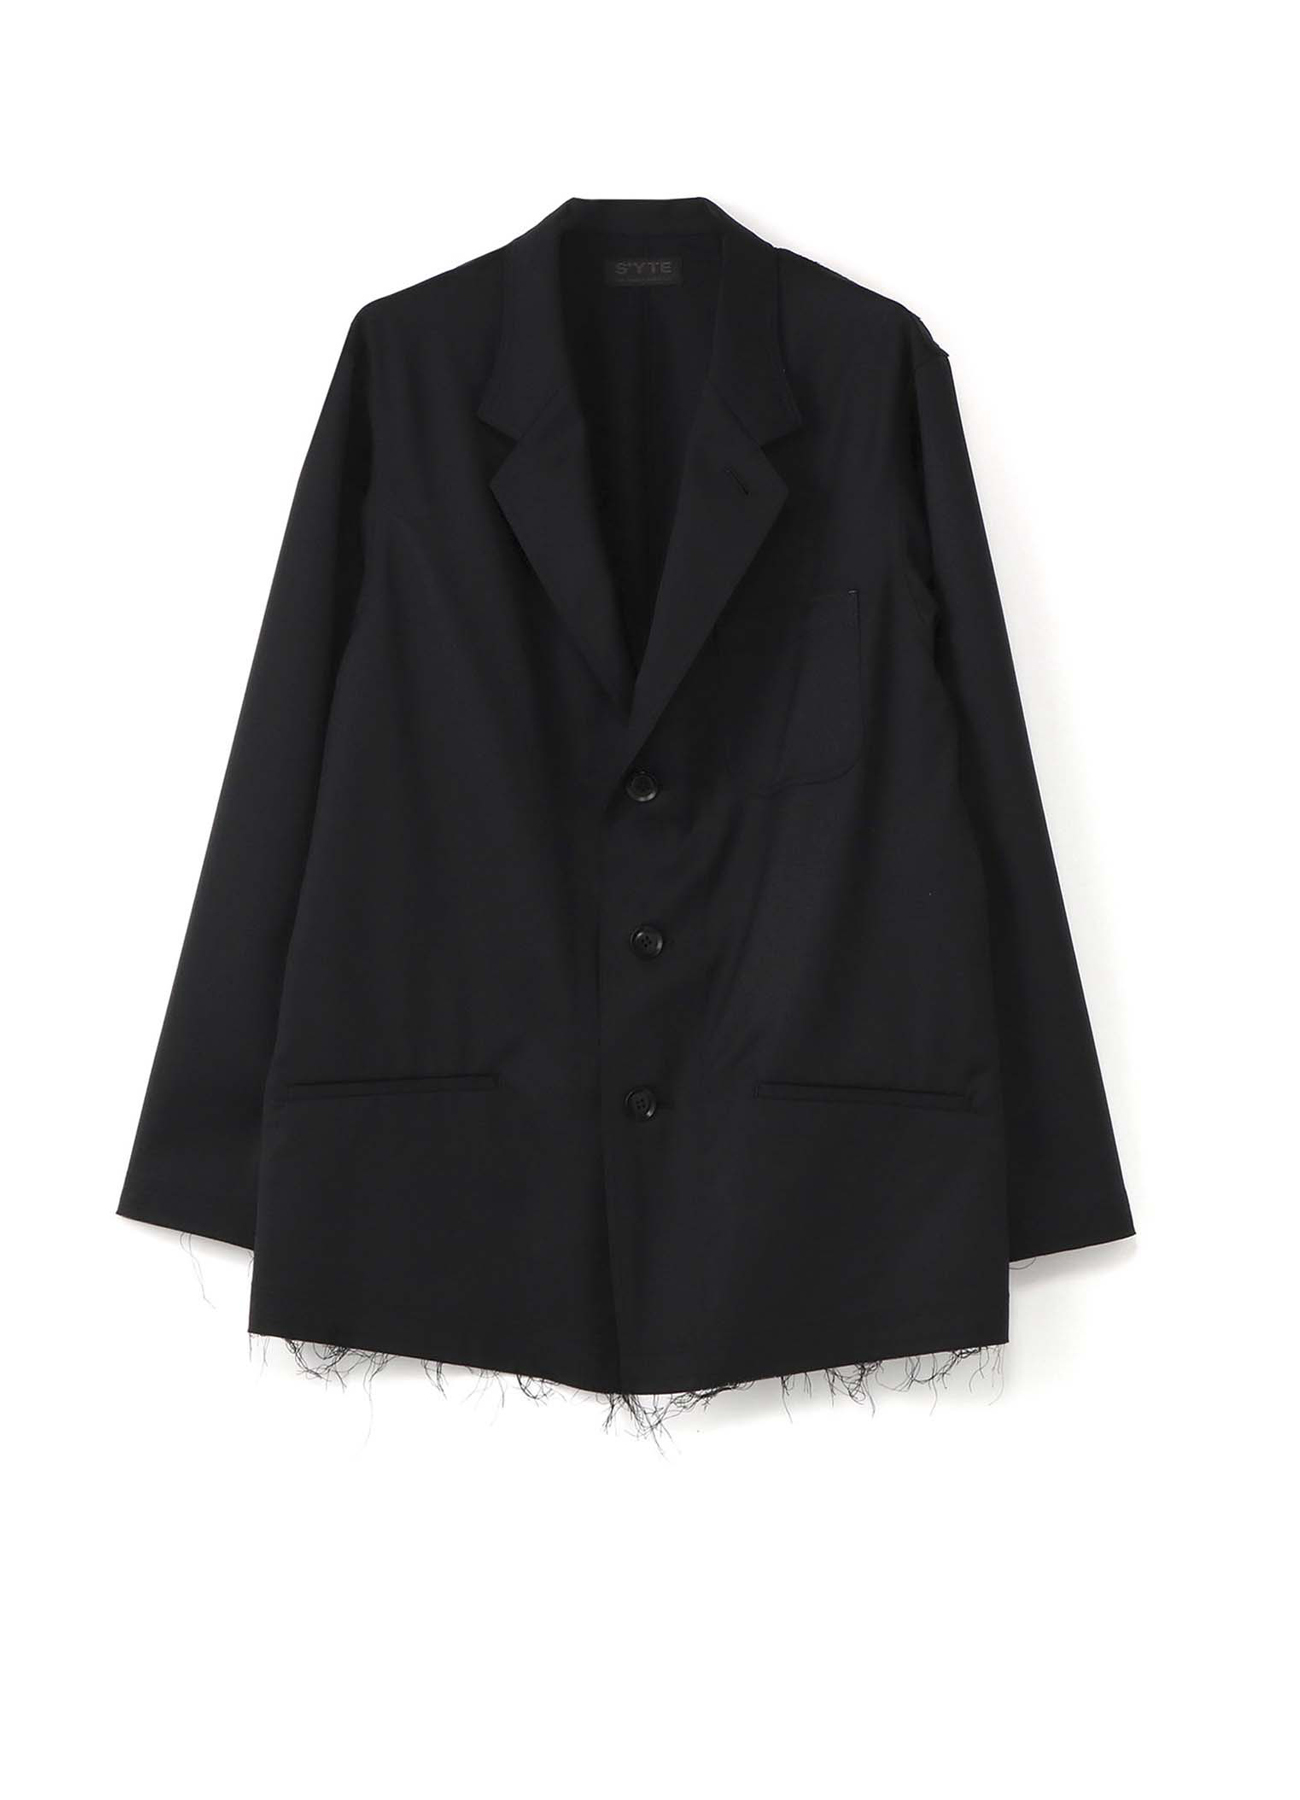 T/W Twill 3BS Tailored Shirt Jacket